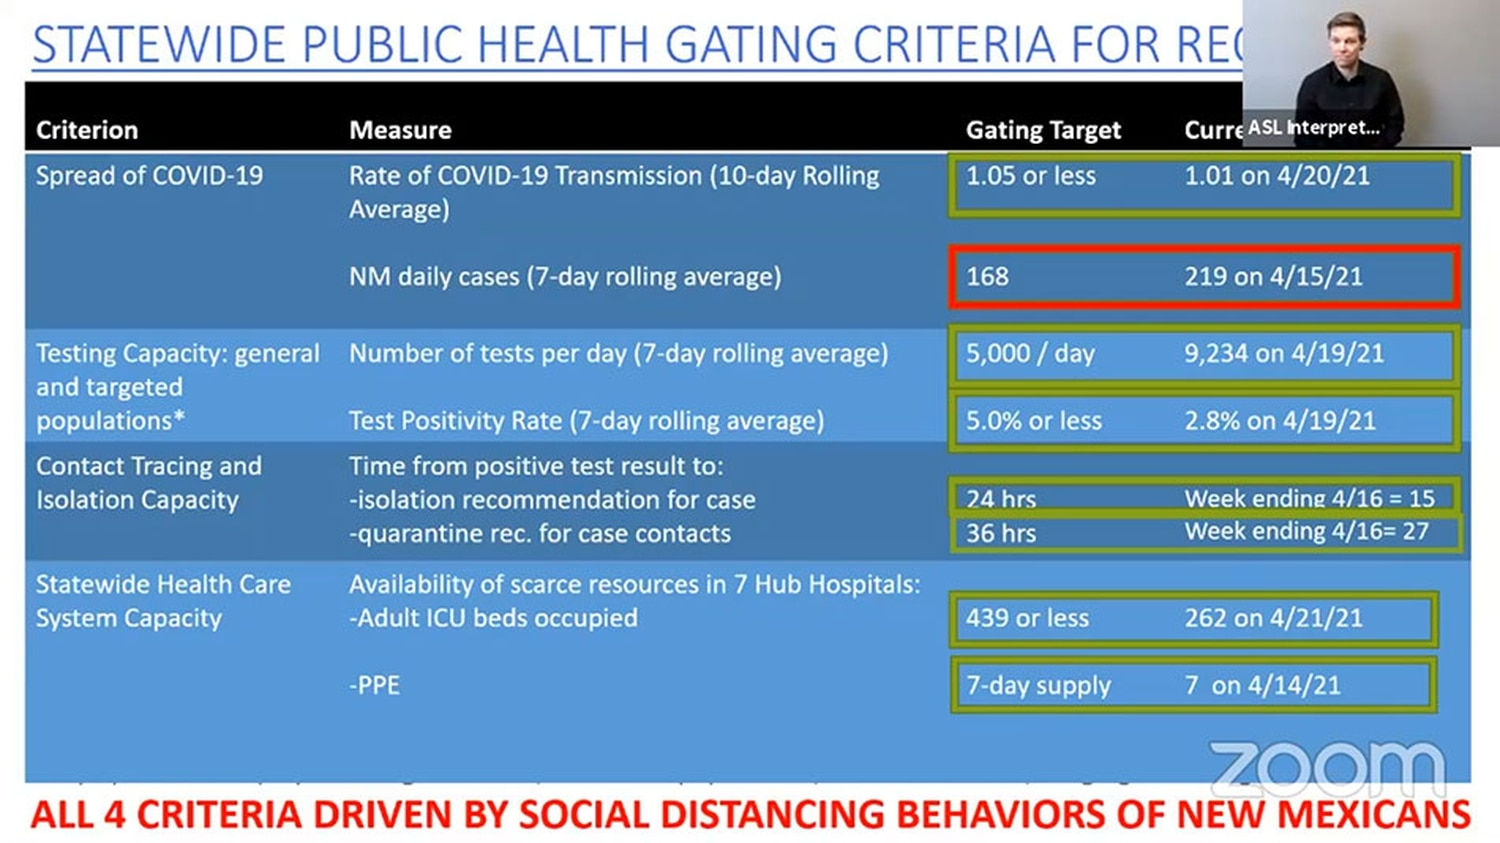 Health officials are looking at changes to the red-to-green framework metrics as well as the statewide gating criteria, which they plan to introduce in two weeks.